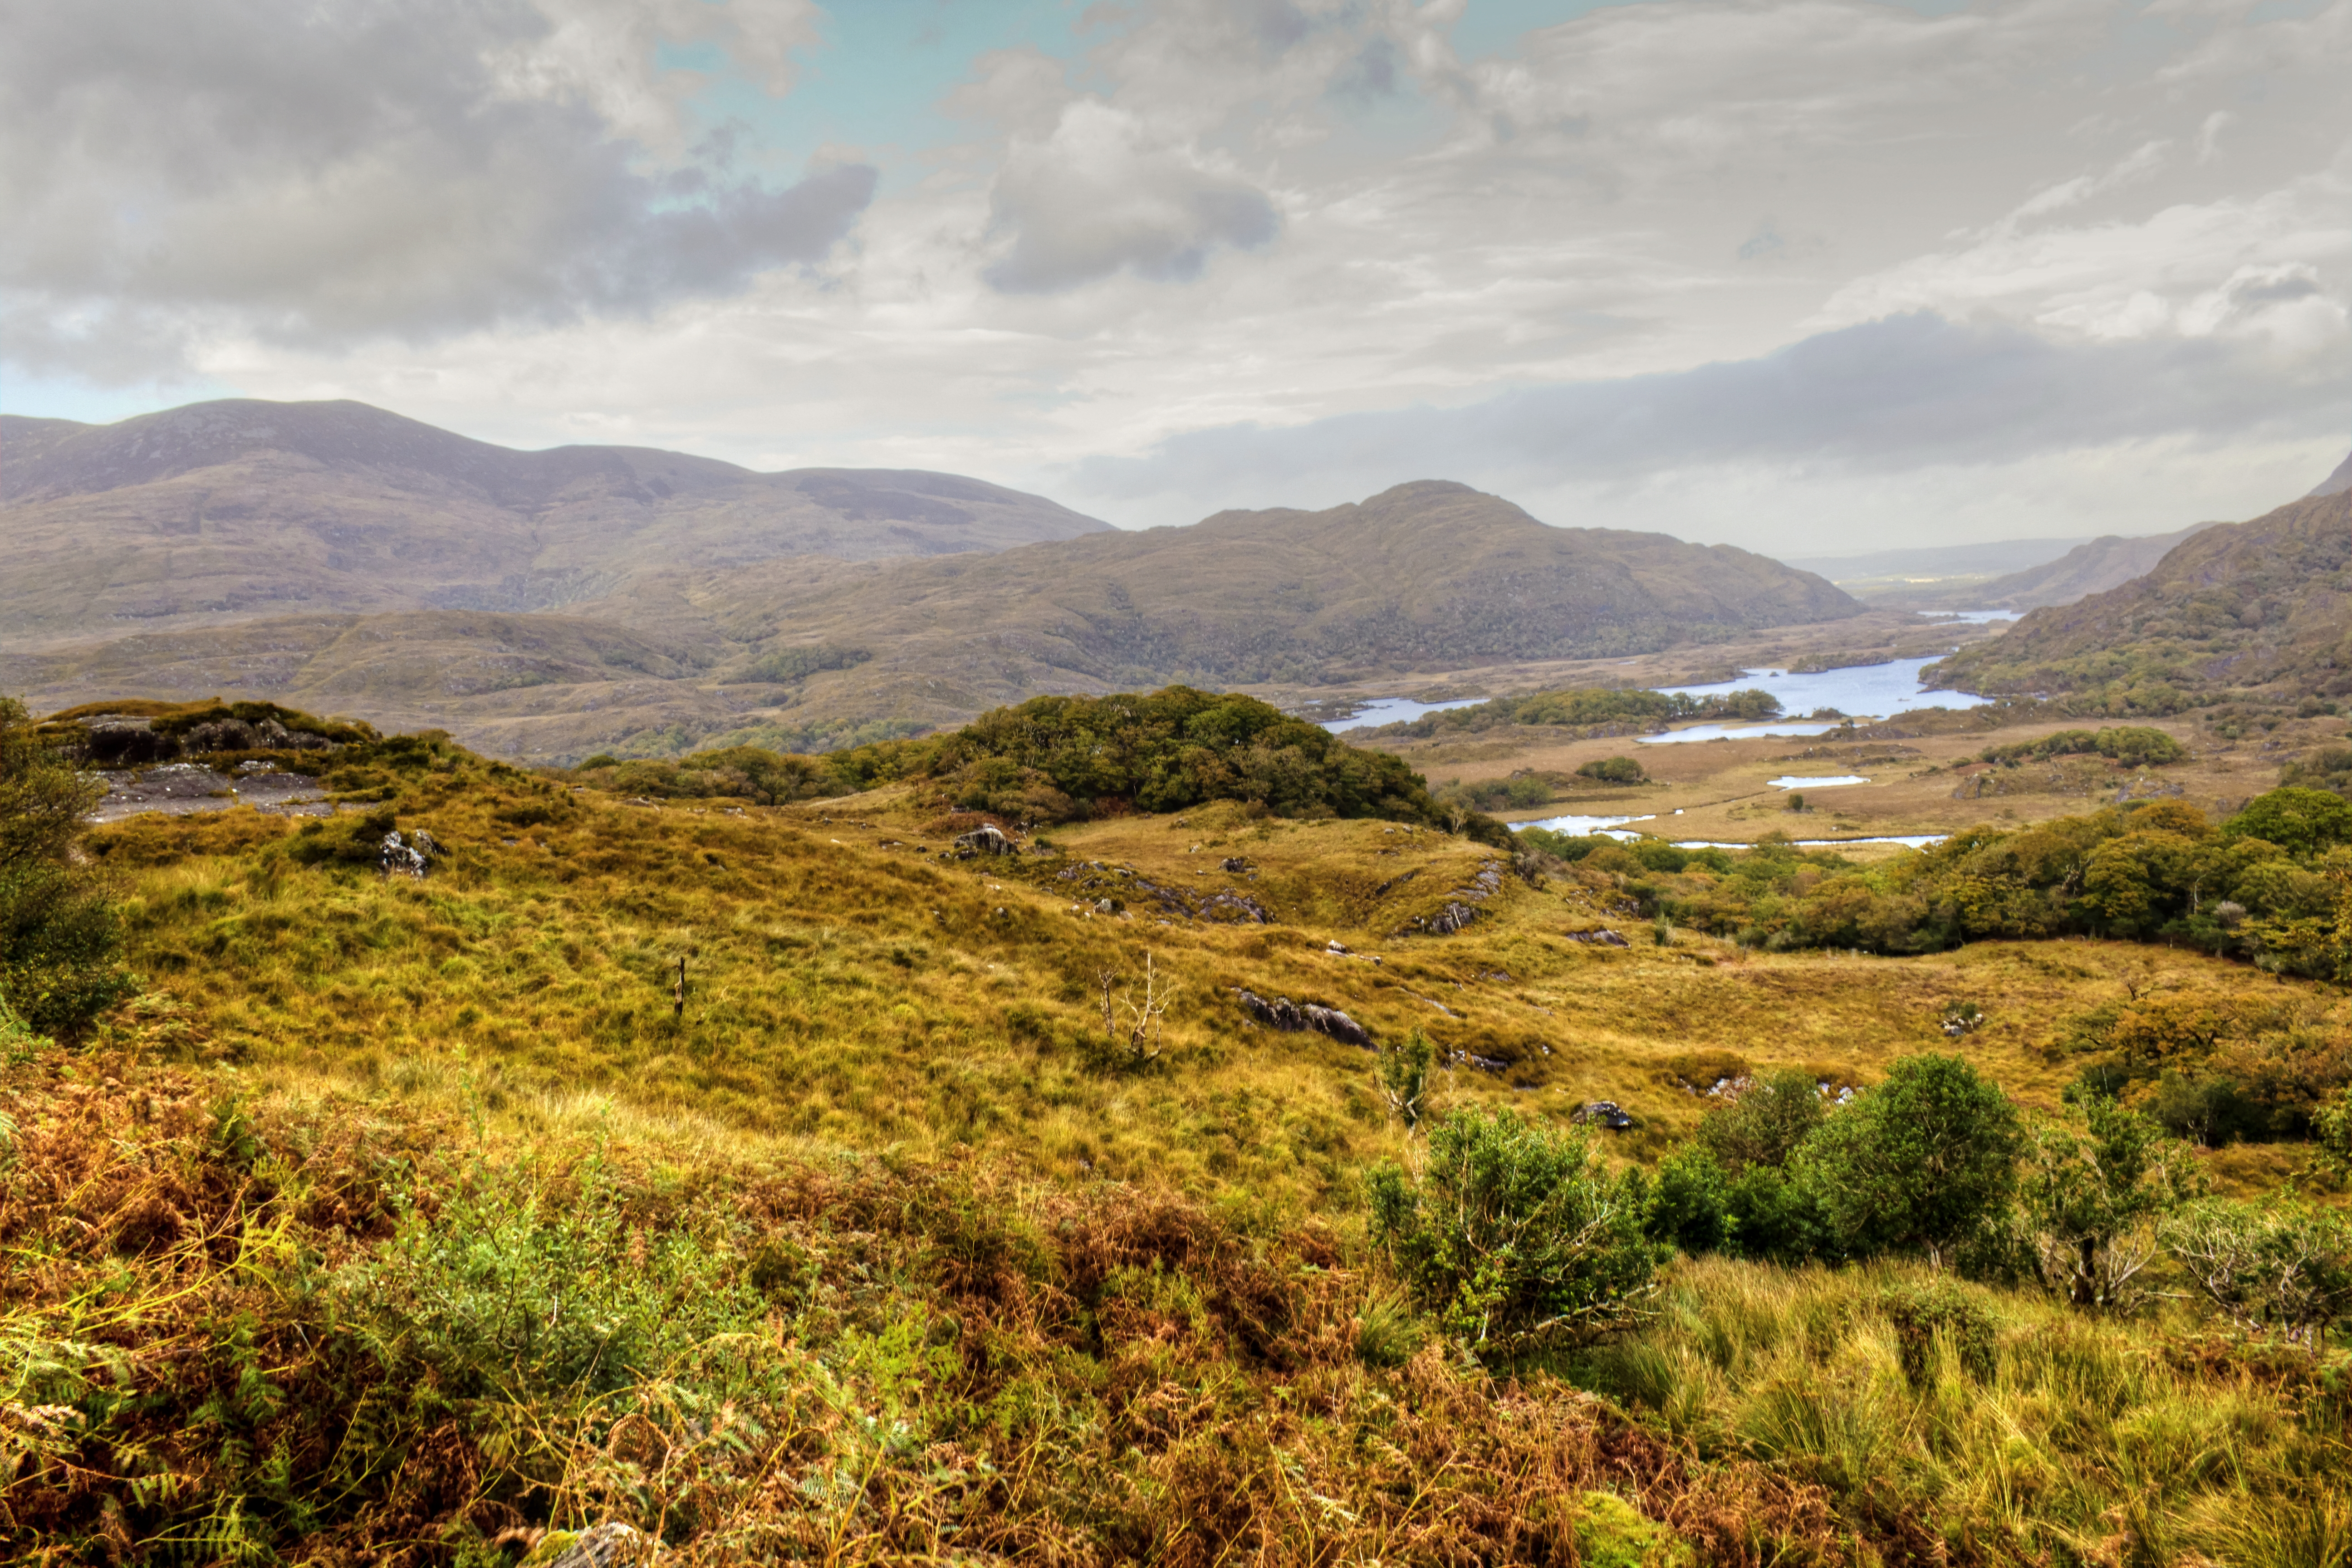 Trekking through Killarney National Park is an awesome thing to do in Ireland